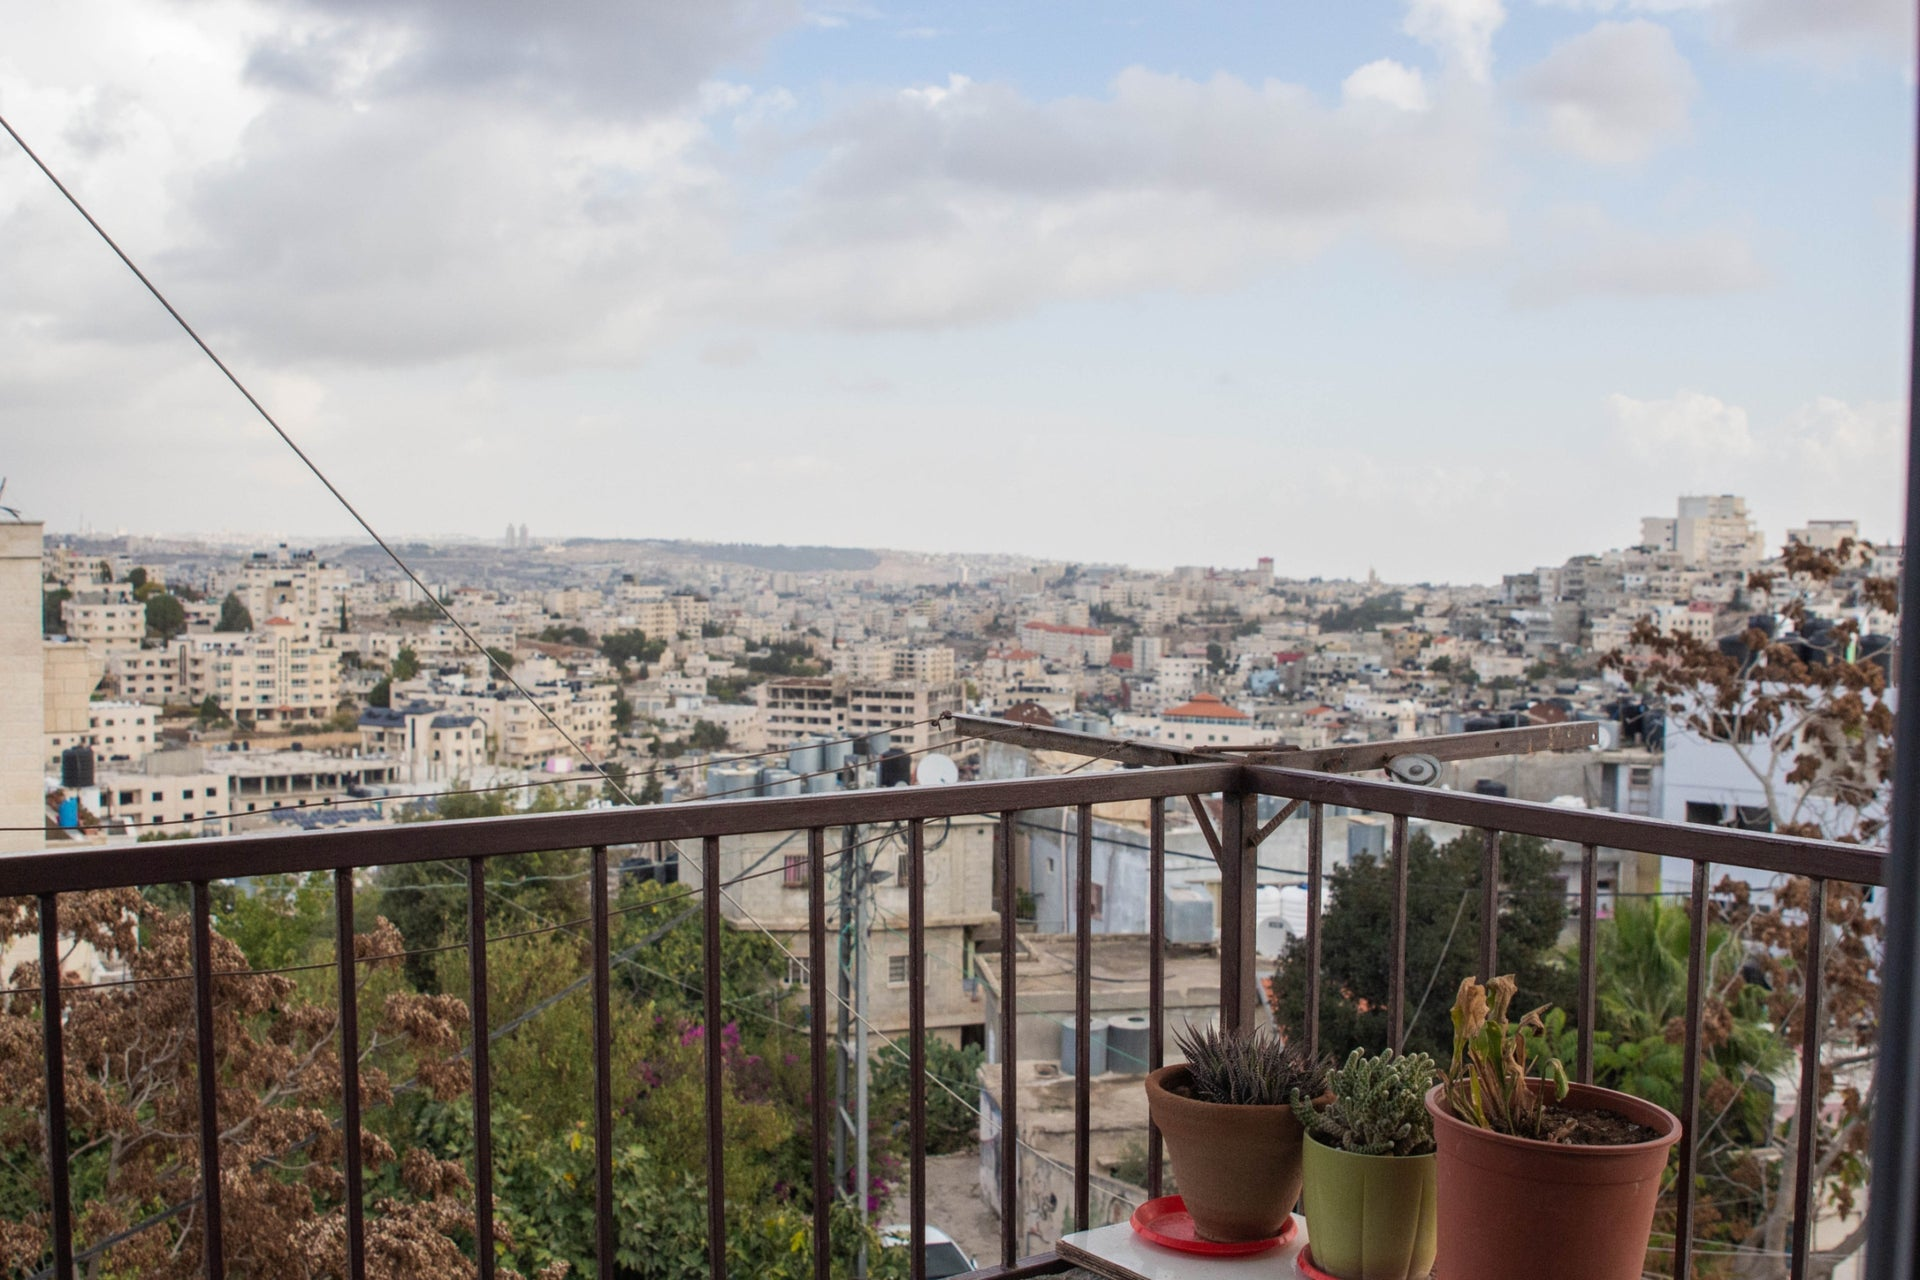 The view from the balcony at Ibrahem Fararja's apartment in Deheisheh. Jerusalem can be seen in the distance.